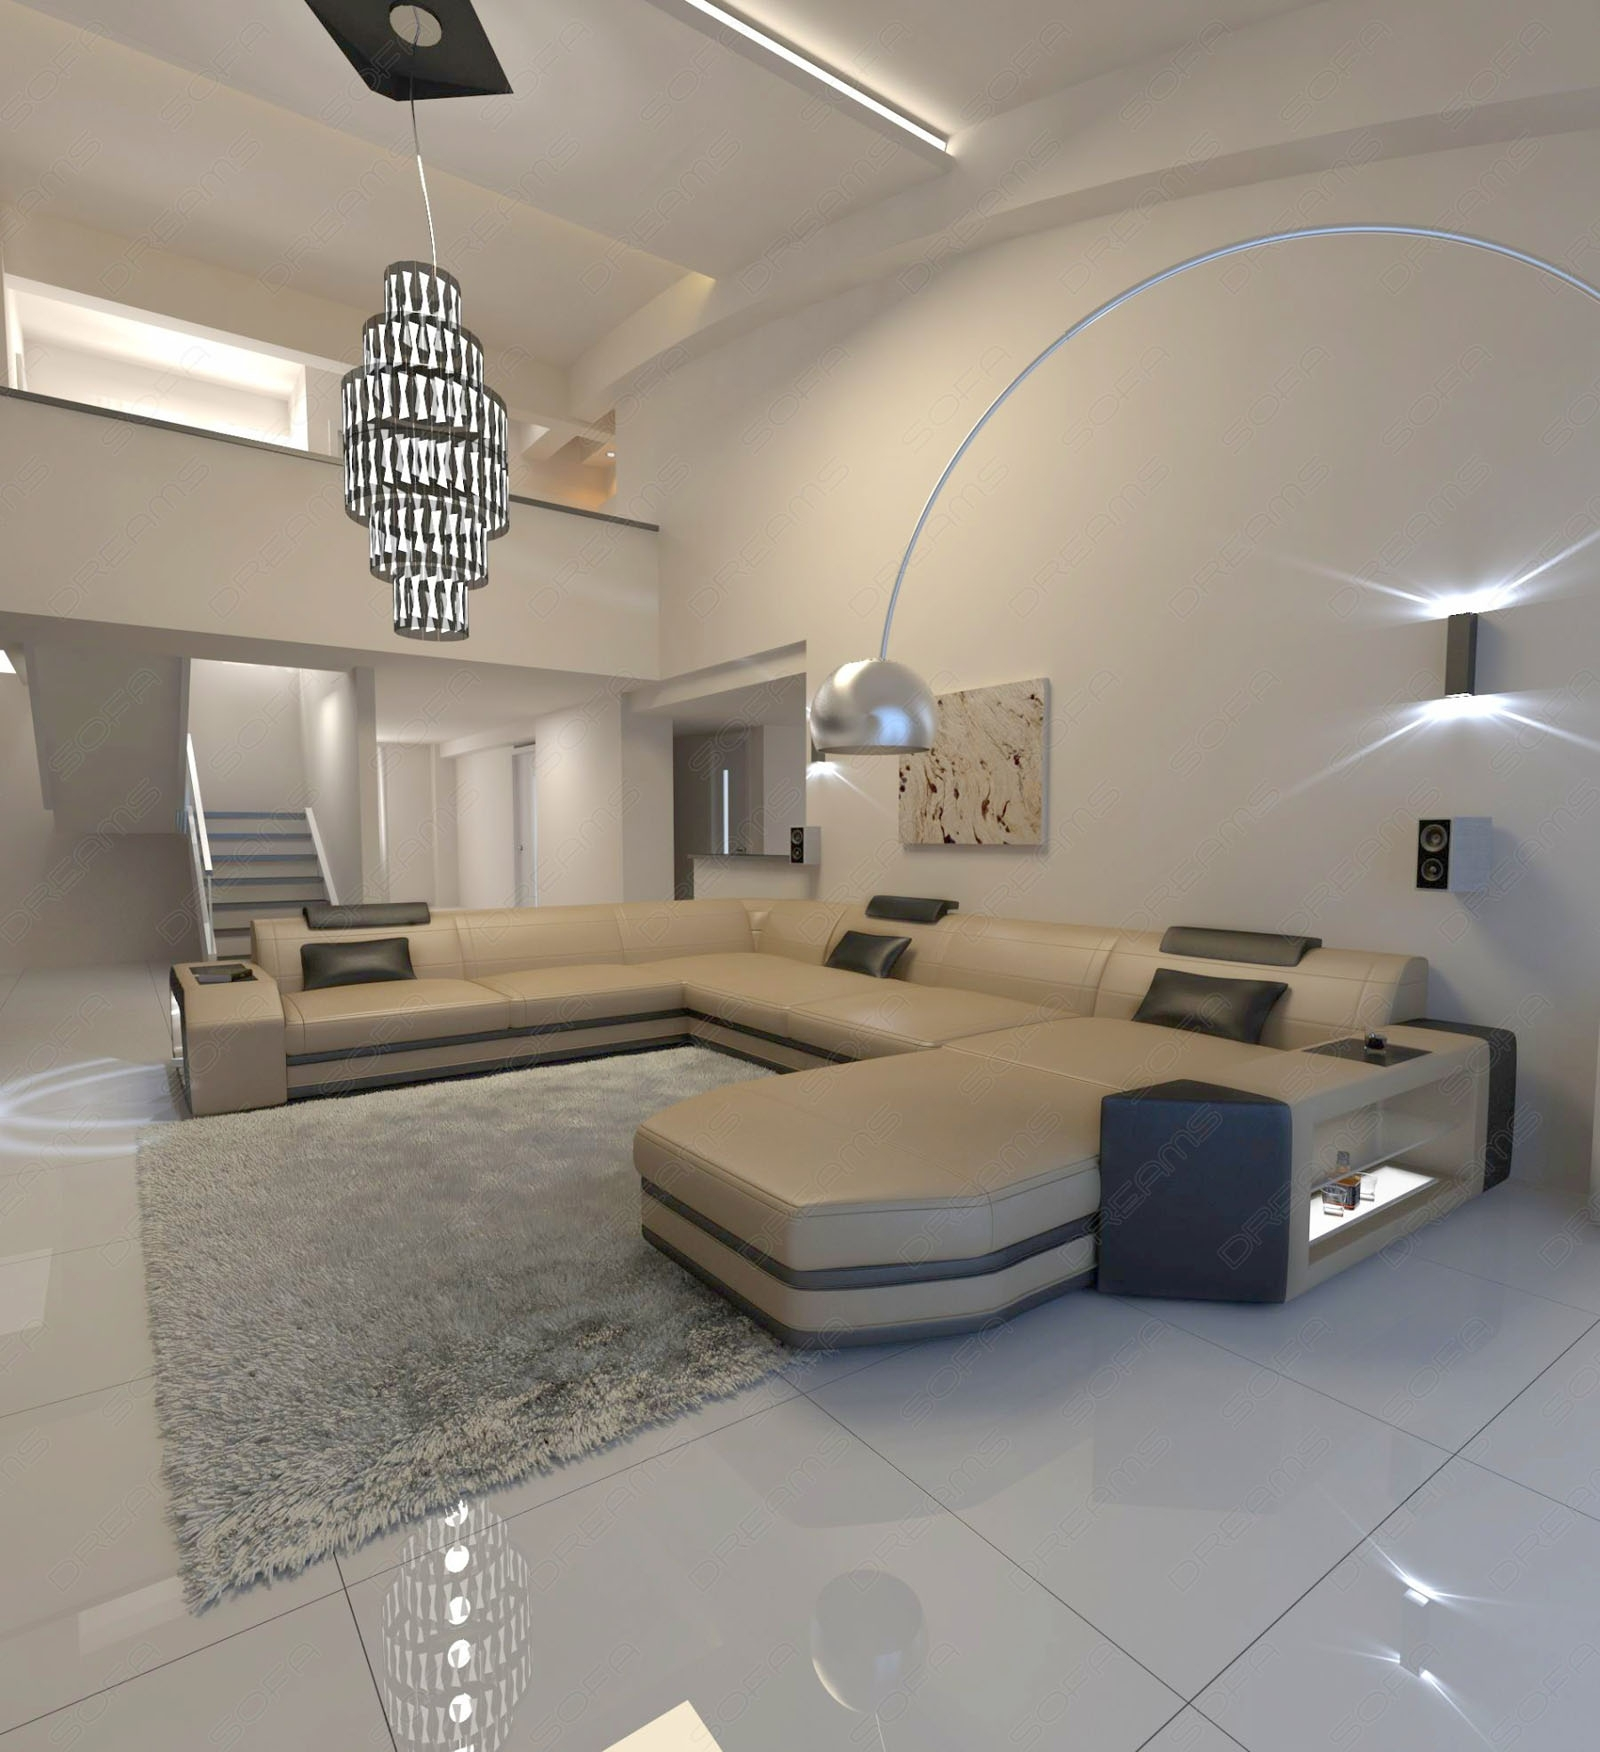 Big Sectional Leather Sofa Prato Xxl With Led Lights Remote Pertaining To Sectional Sofas From Europe (Image 1 of 10)